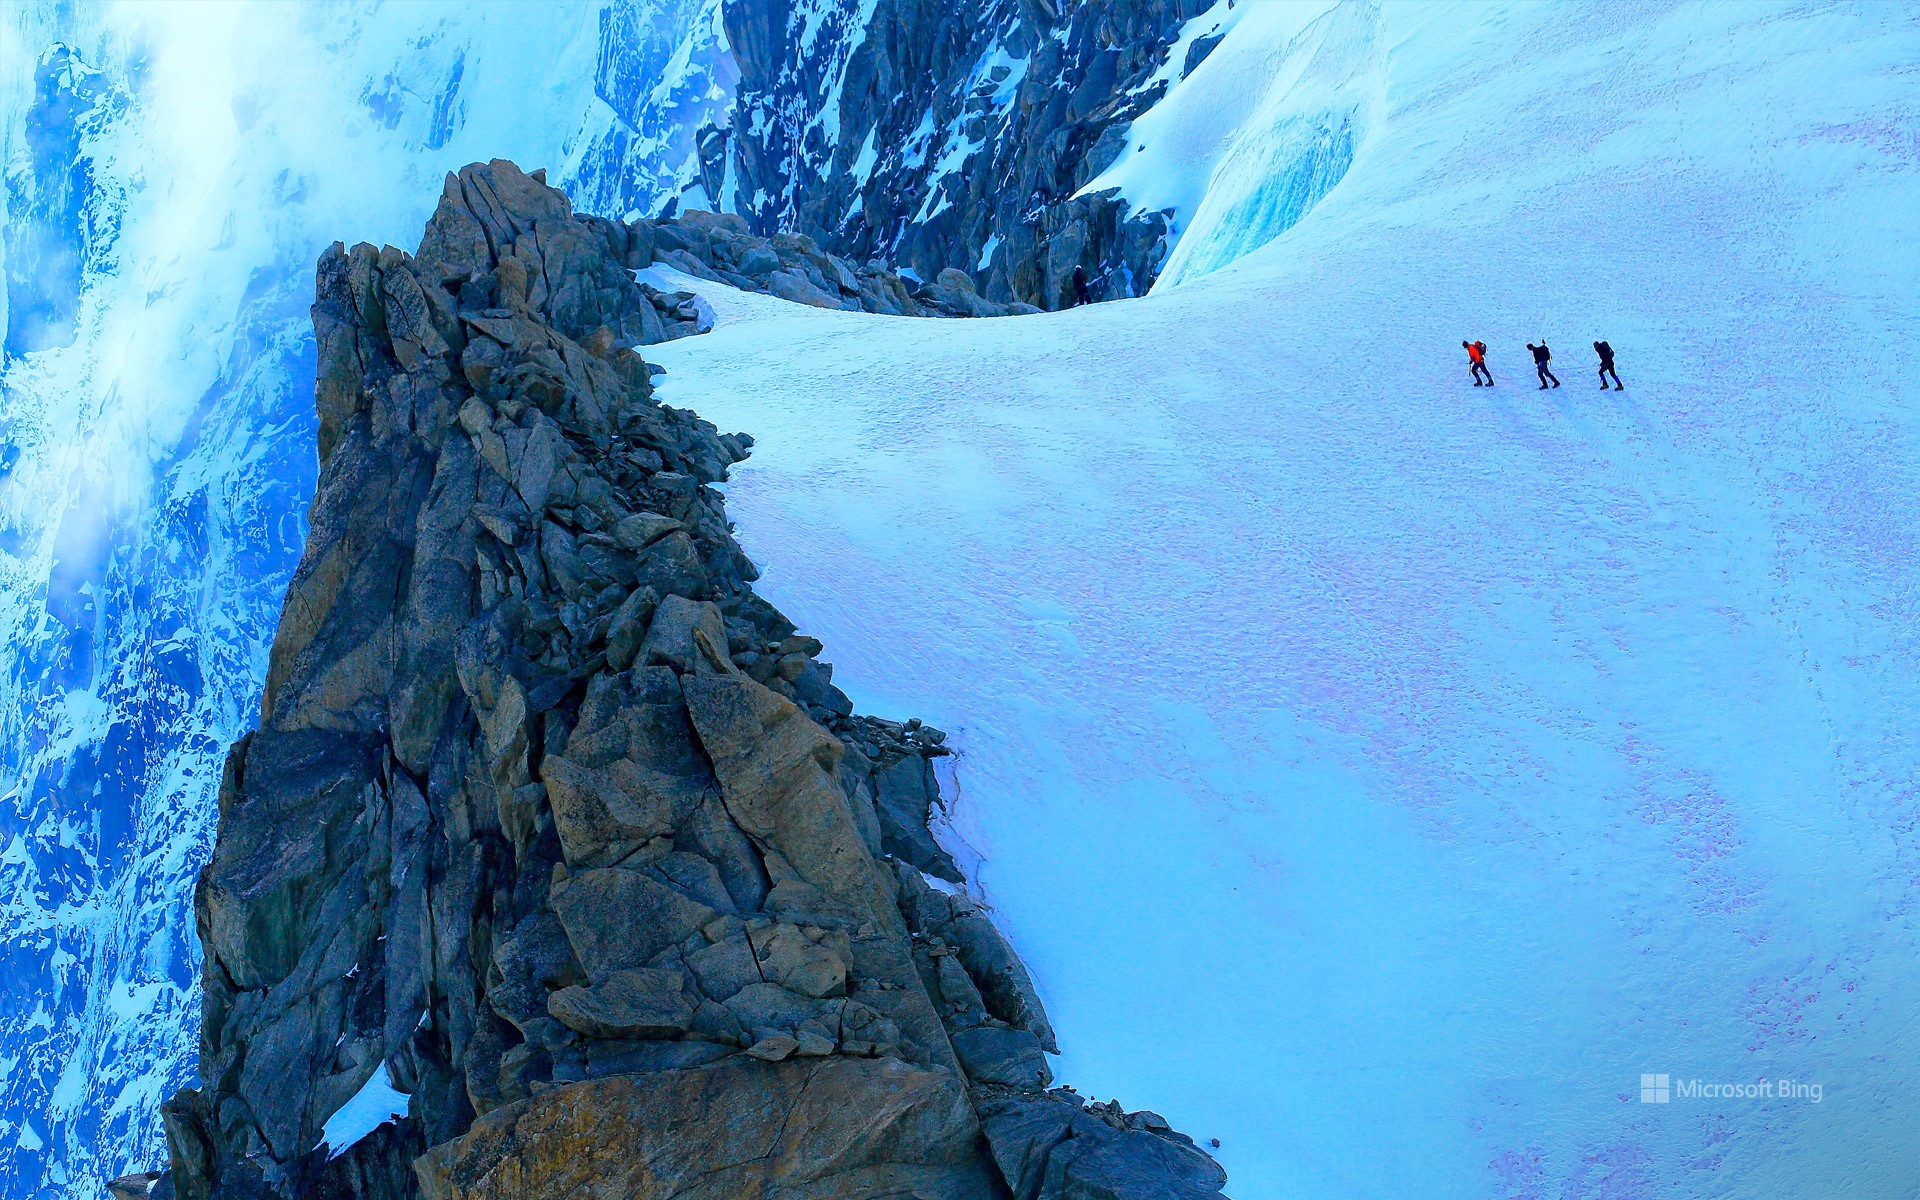 Hikers on alpine glacier, Mont Blanc, Chamonix, France